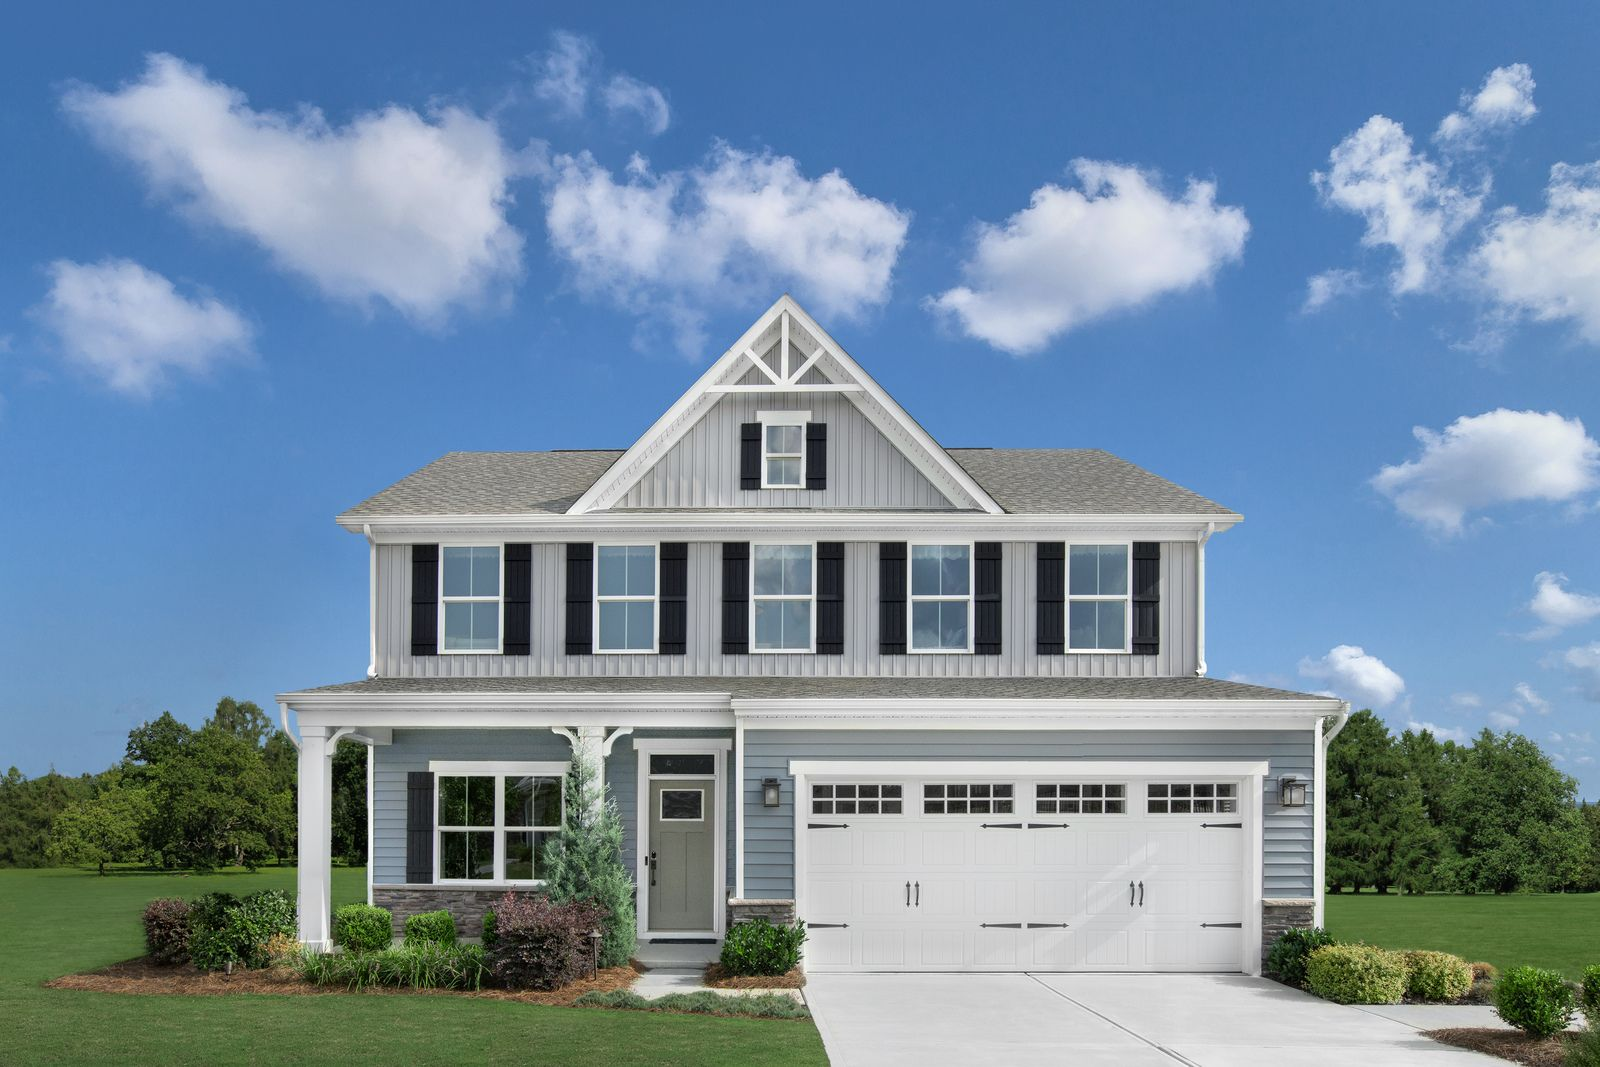 Welcome Home to Clublands of Antioch Legends - A Scenic Community in the Perfect Location:Luxury homes in a scenic community with new look-out homesites. In Antioch District #34 w/ finished basement options. Community walking trails & park with future clubhouse.Schedule your visit today!